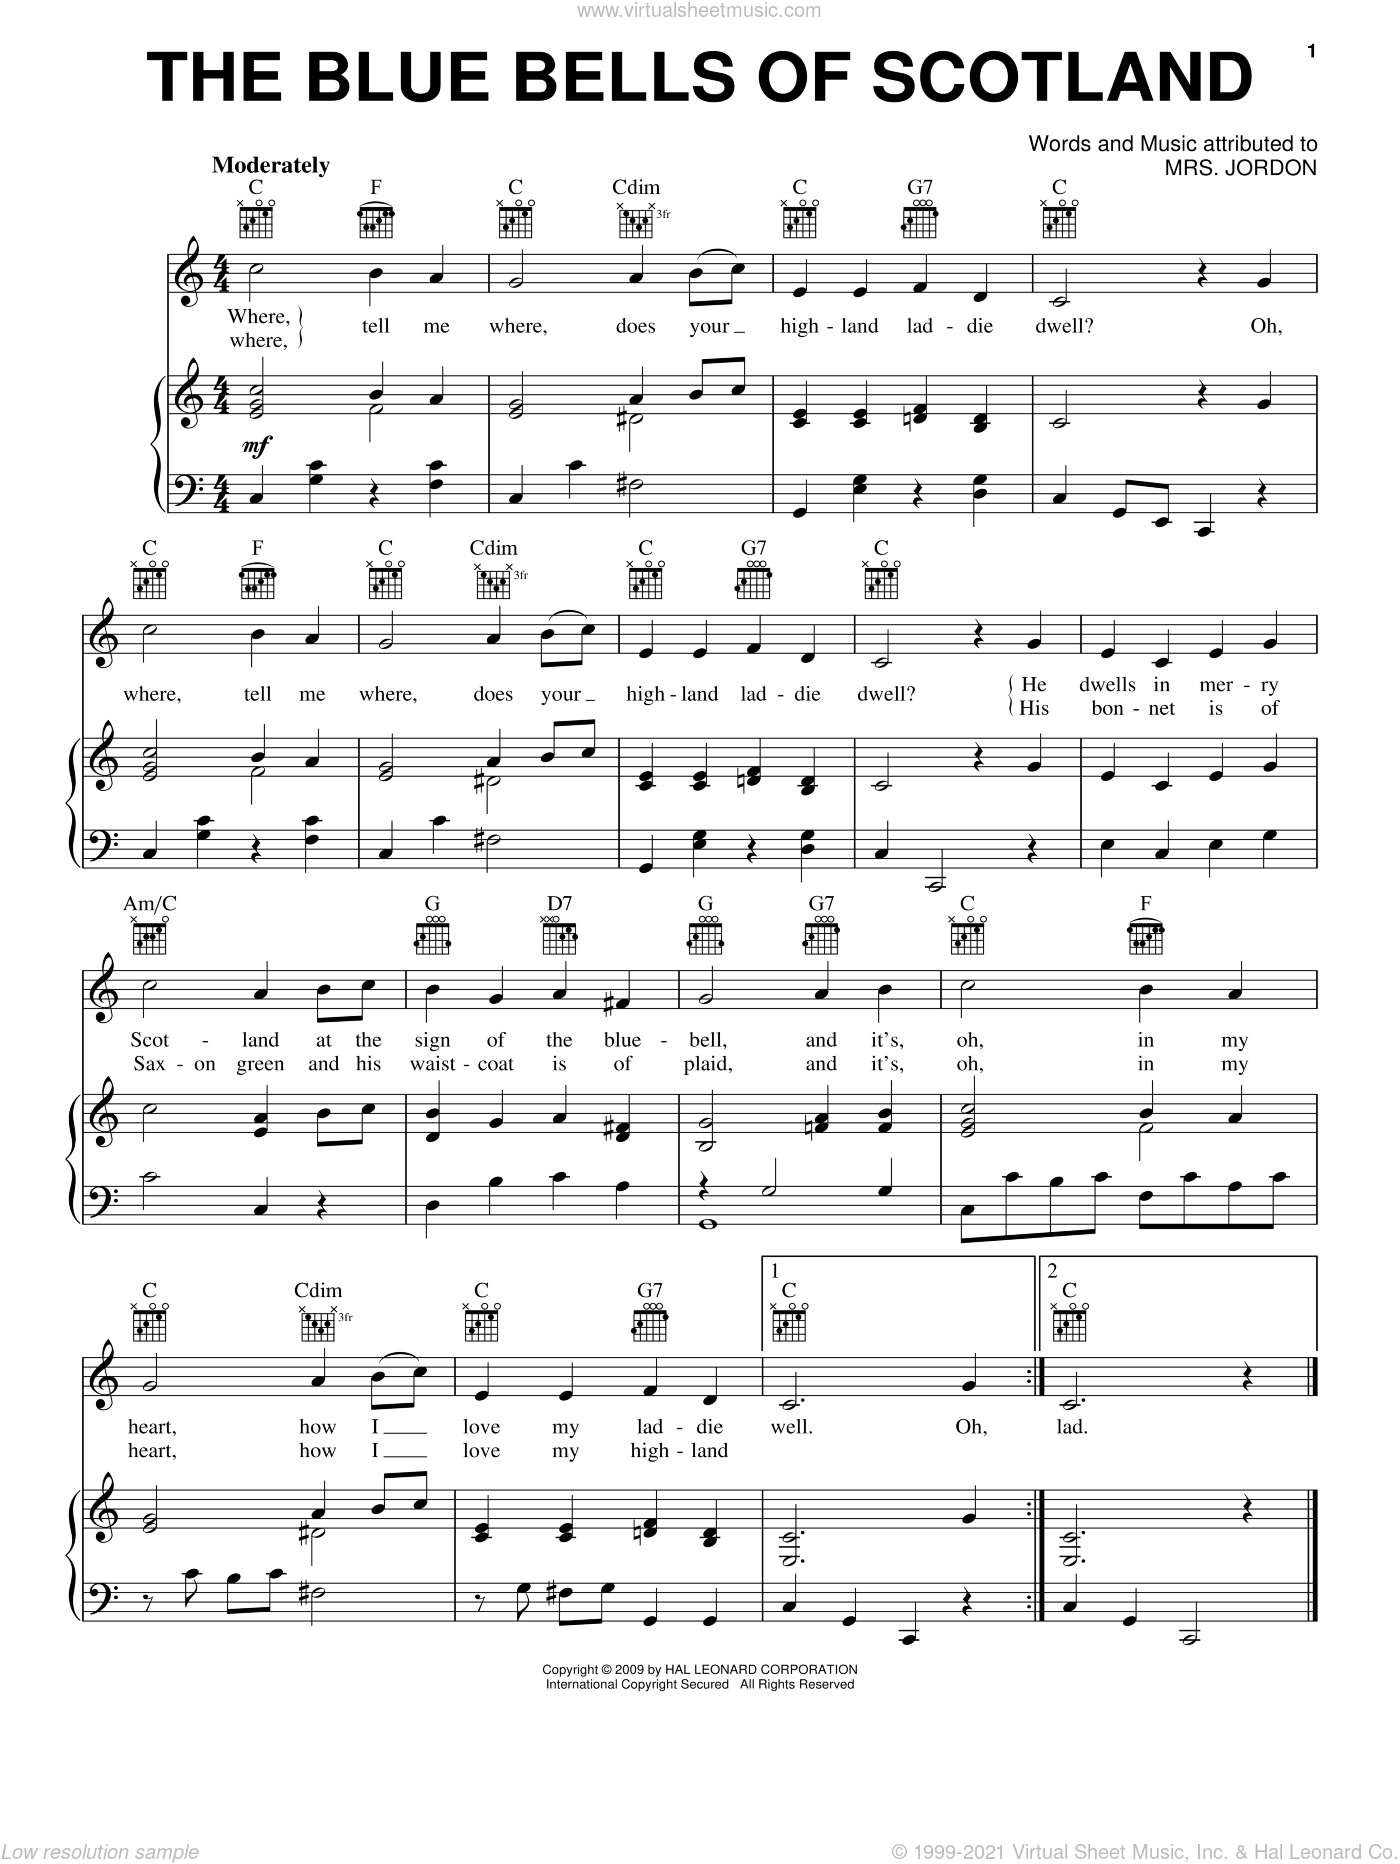 The Blue Bells Of Scotland sheet music for voice, piano or guitar by Mrs. Jordon